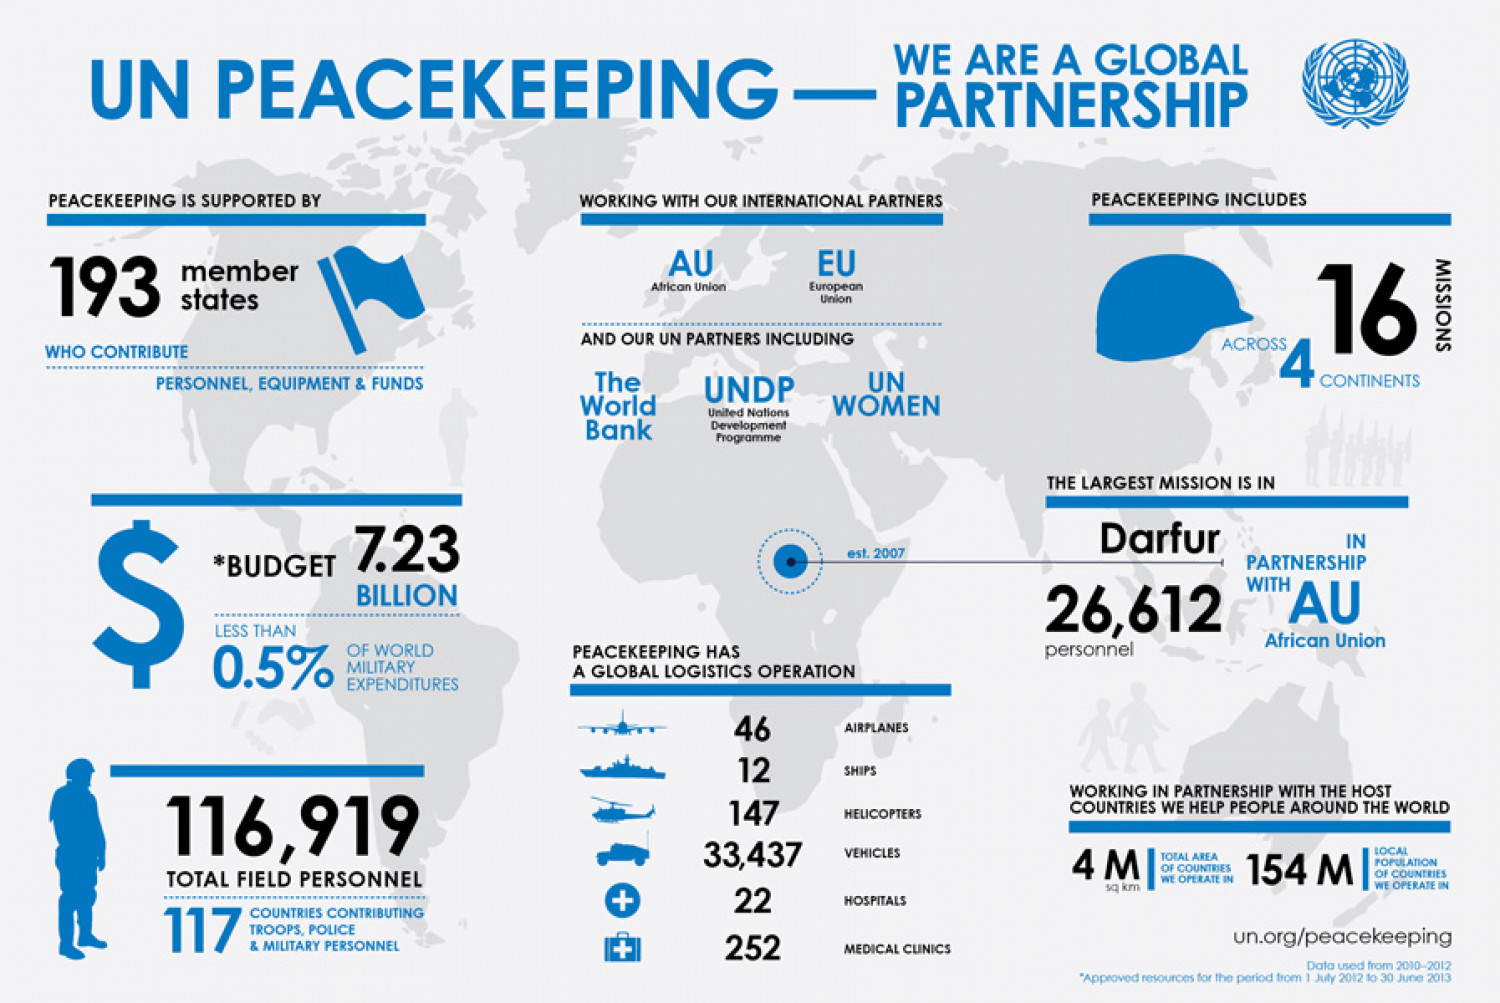 UN Peacekeeping - a Global Partnership Infographic